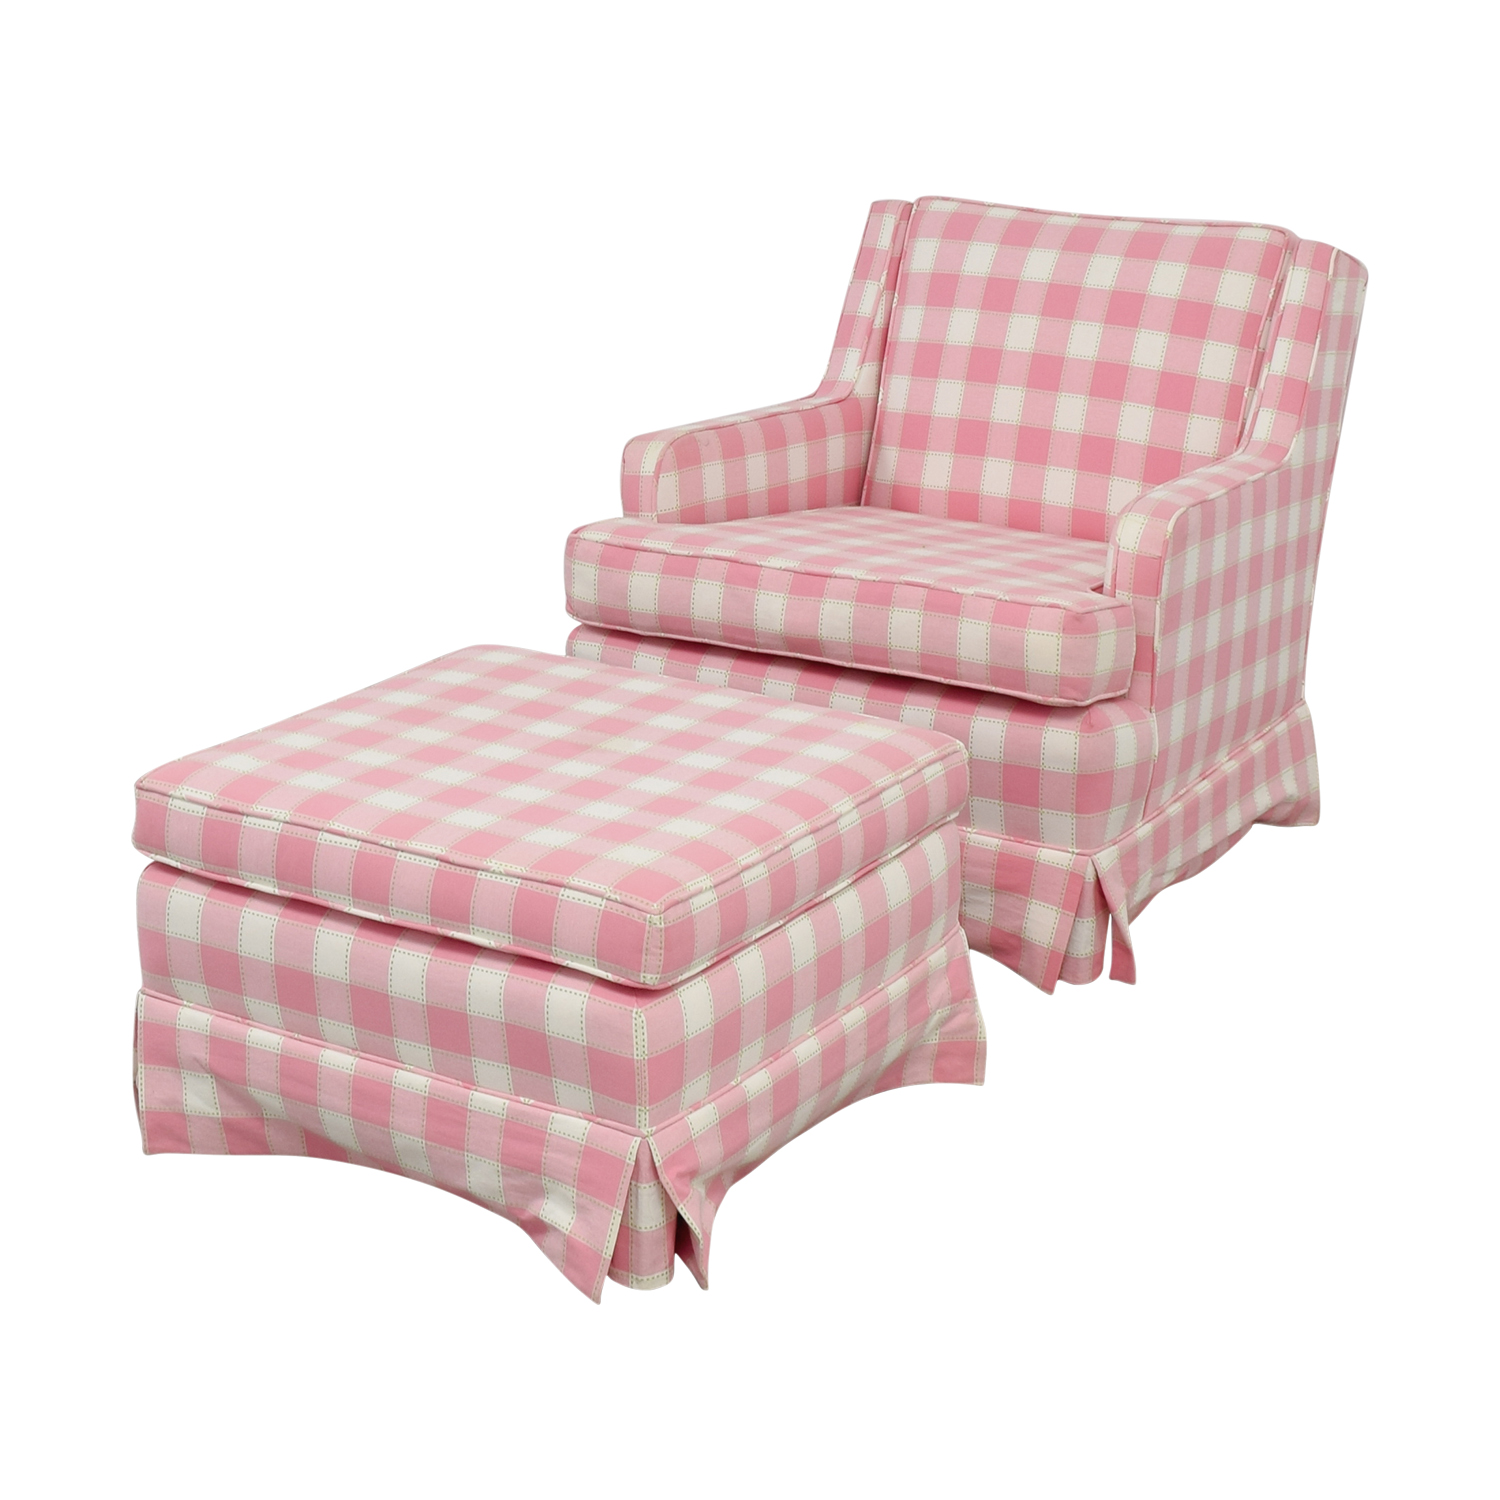 82 OFF  Pink and White Plaid Chair and Ottoman  Chairs